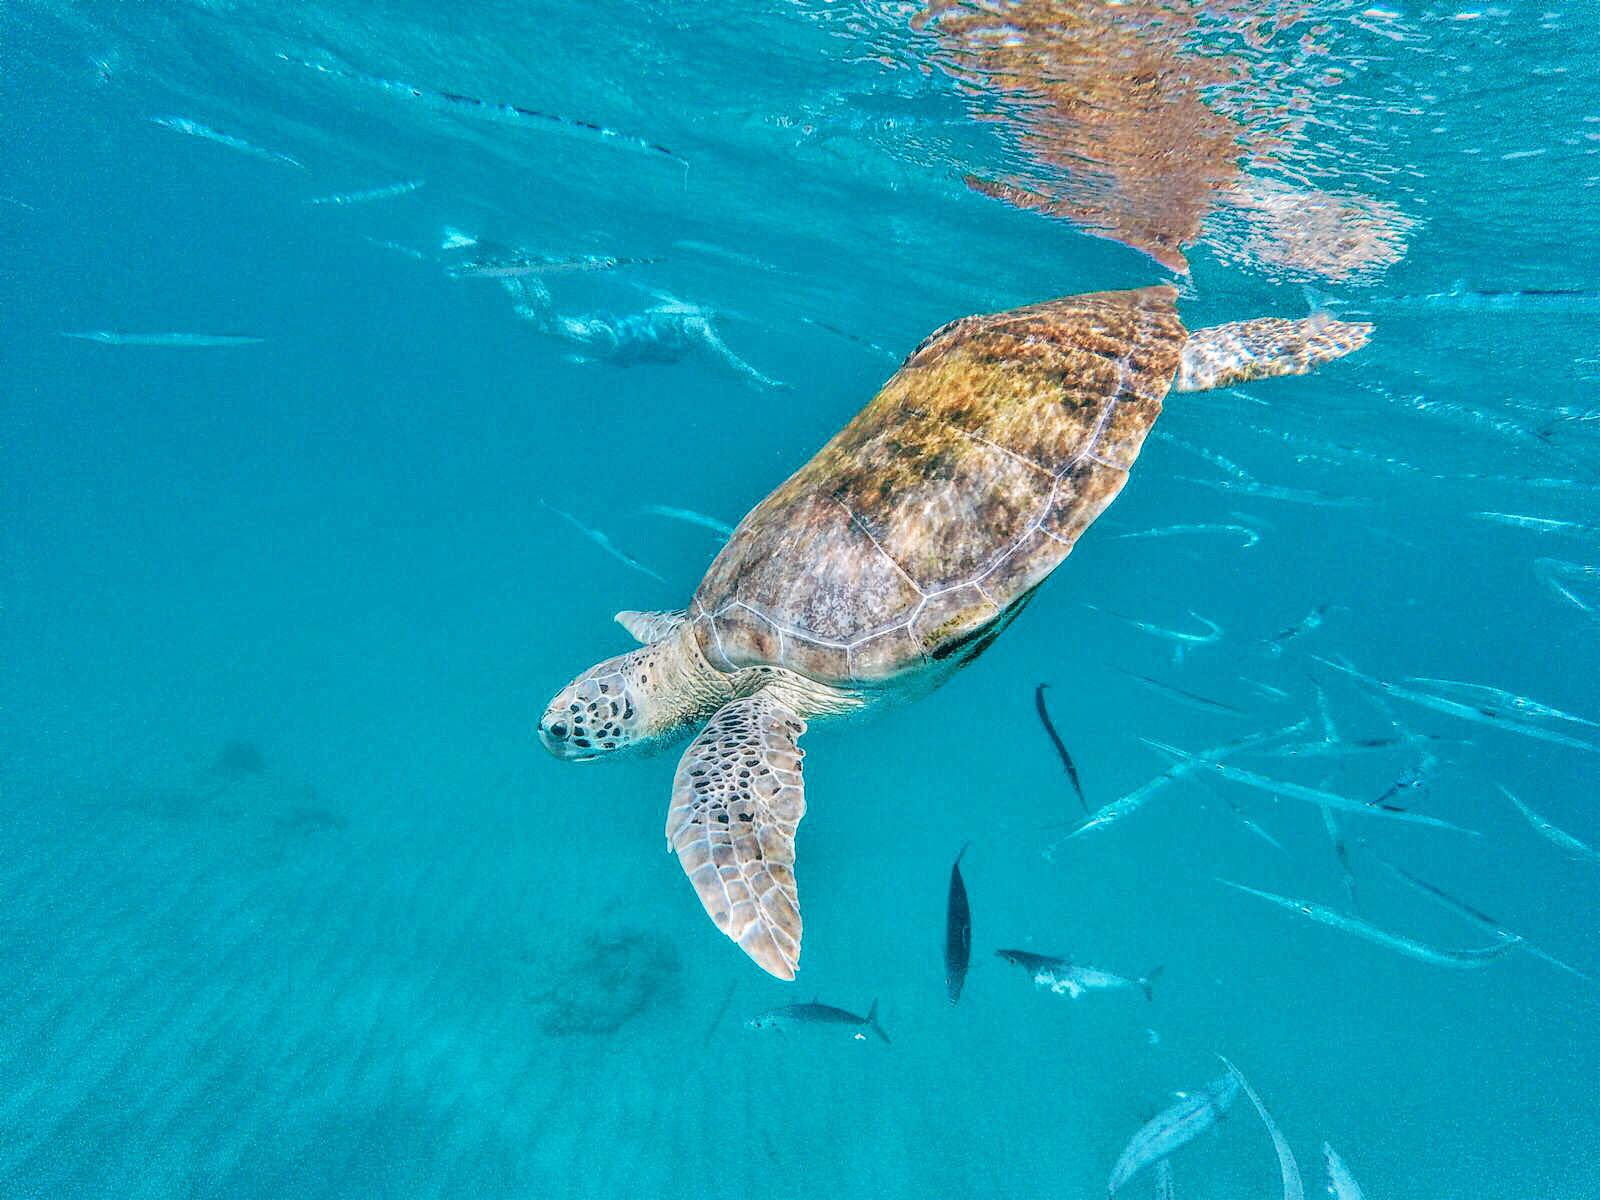 Swimming With Turtles in The Pristine Caribbean Sea - Hello From Barbados! (7)